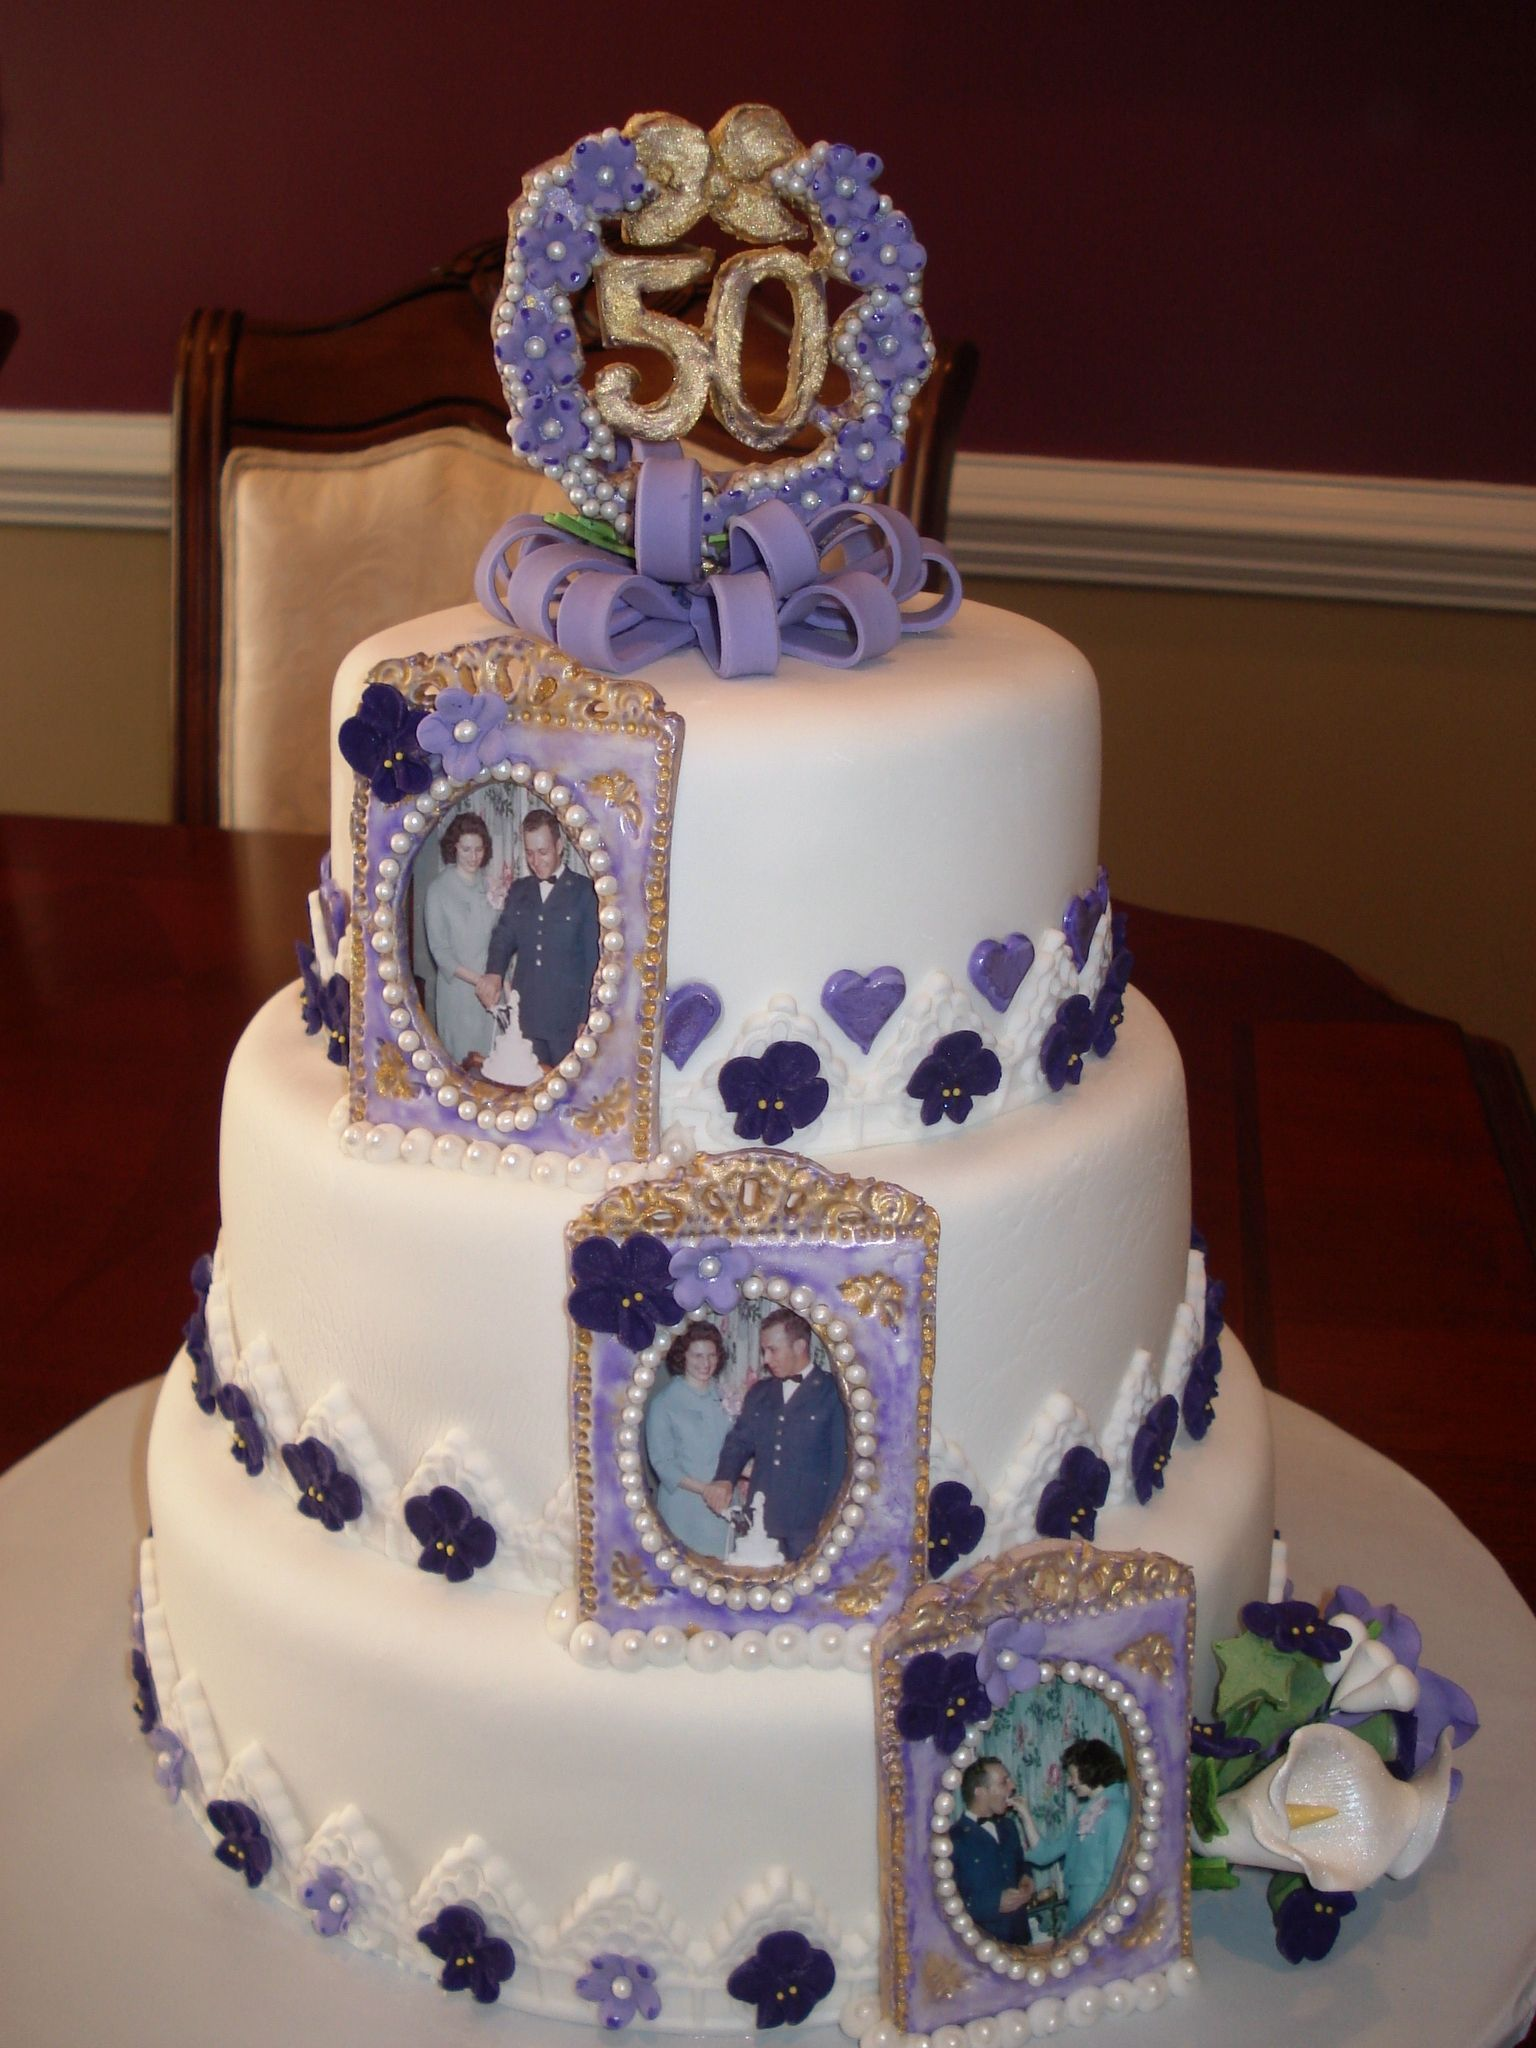 50th Anniversary Cake With Sugar Paste Picture Frames And